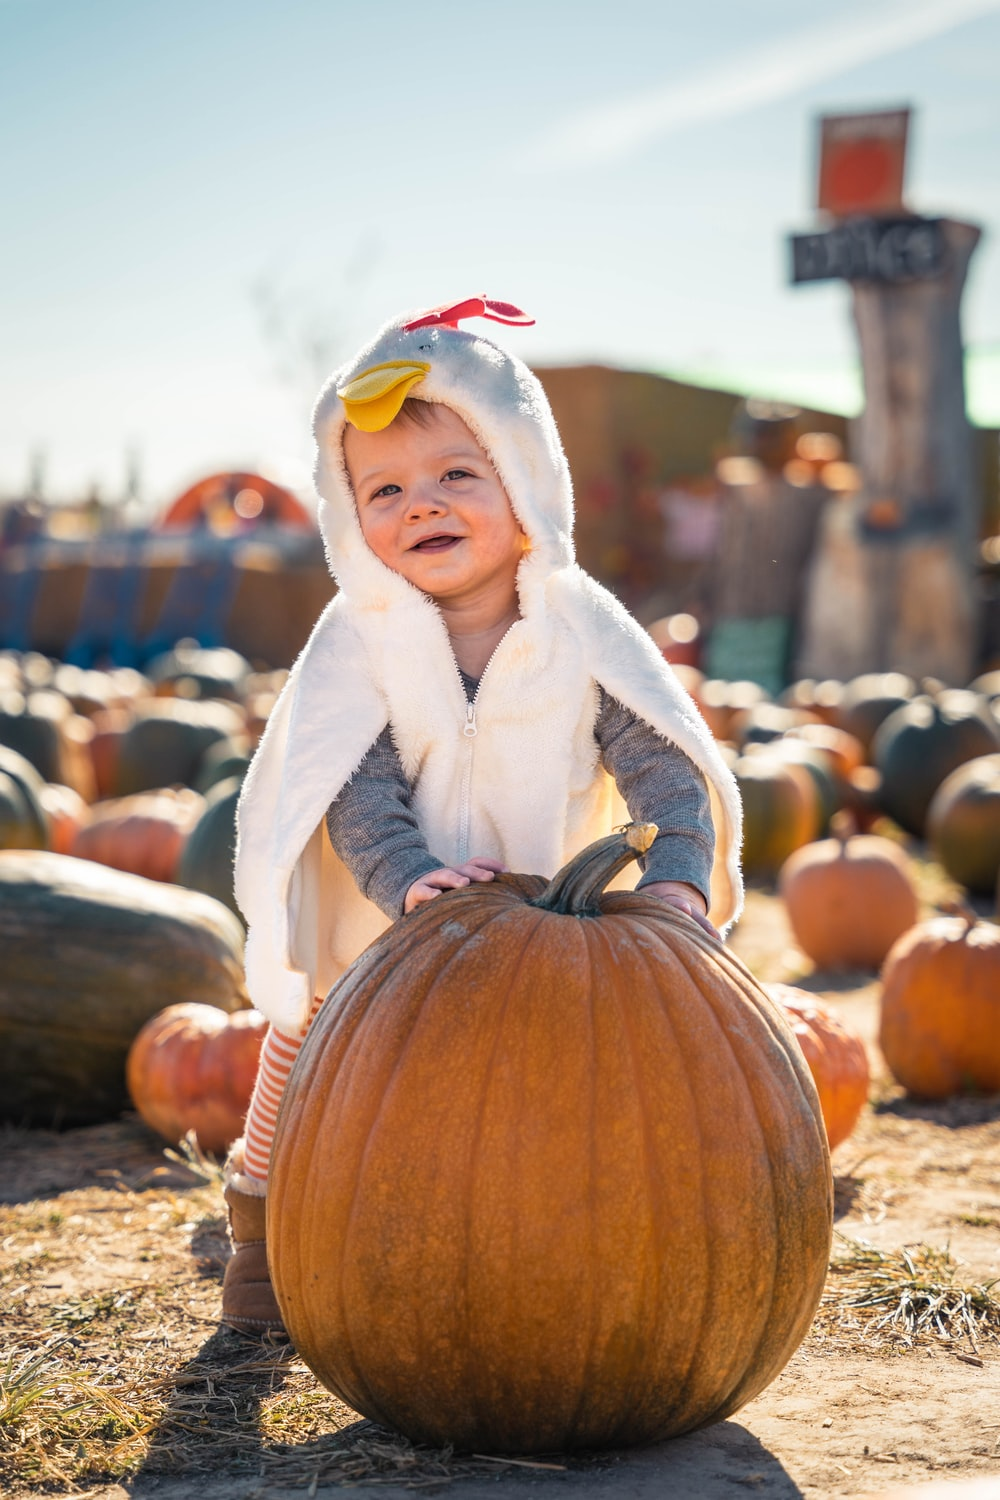 girl in white coat standing on pumpkin during daytime